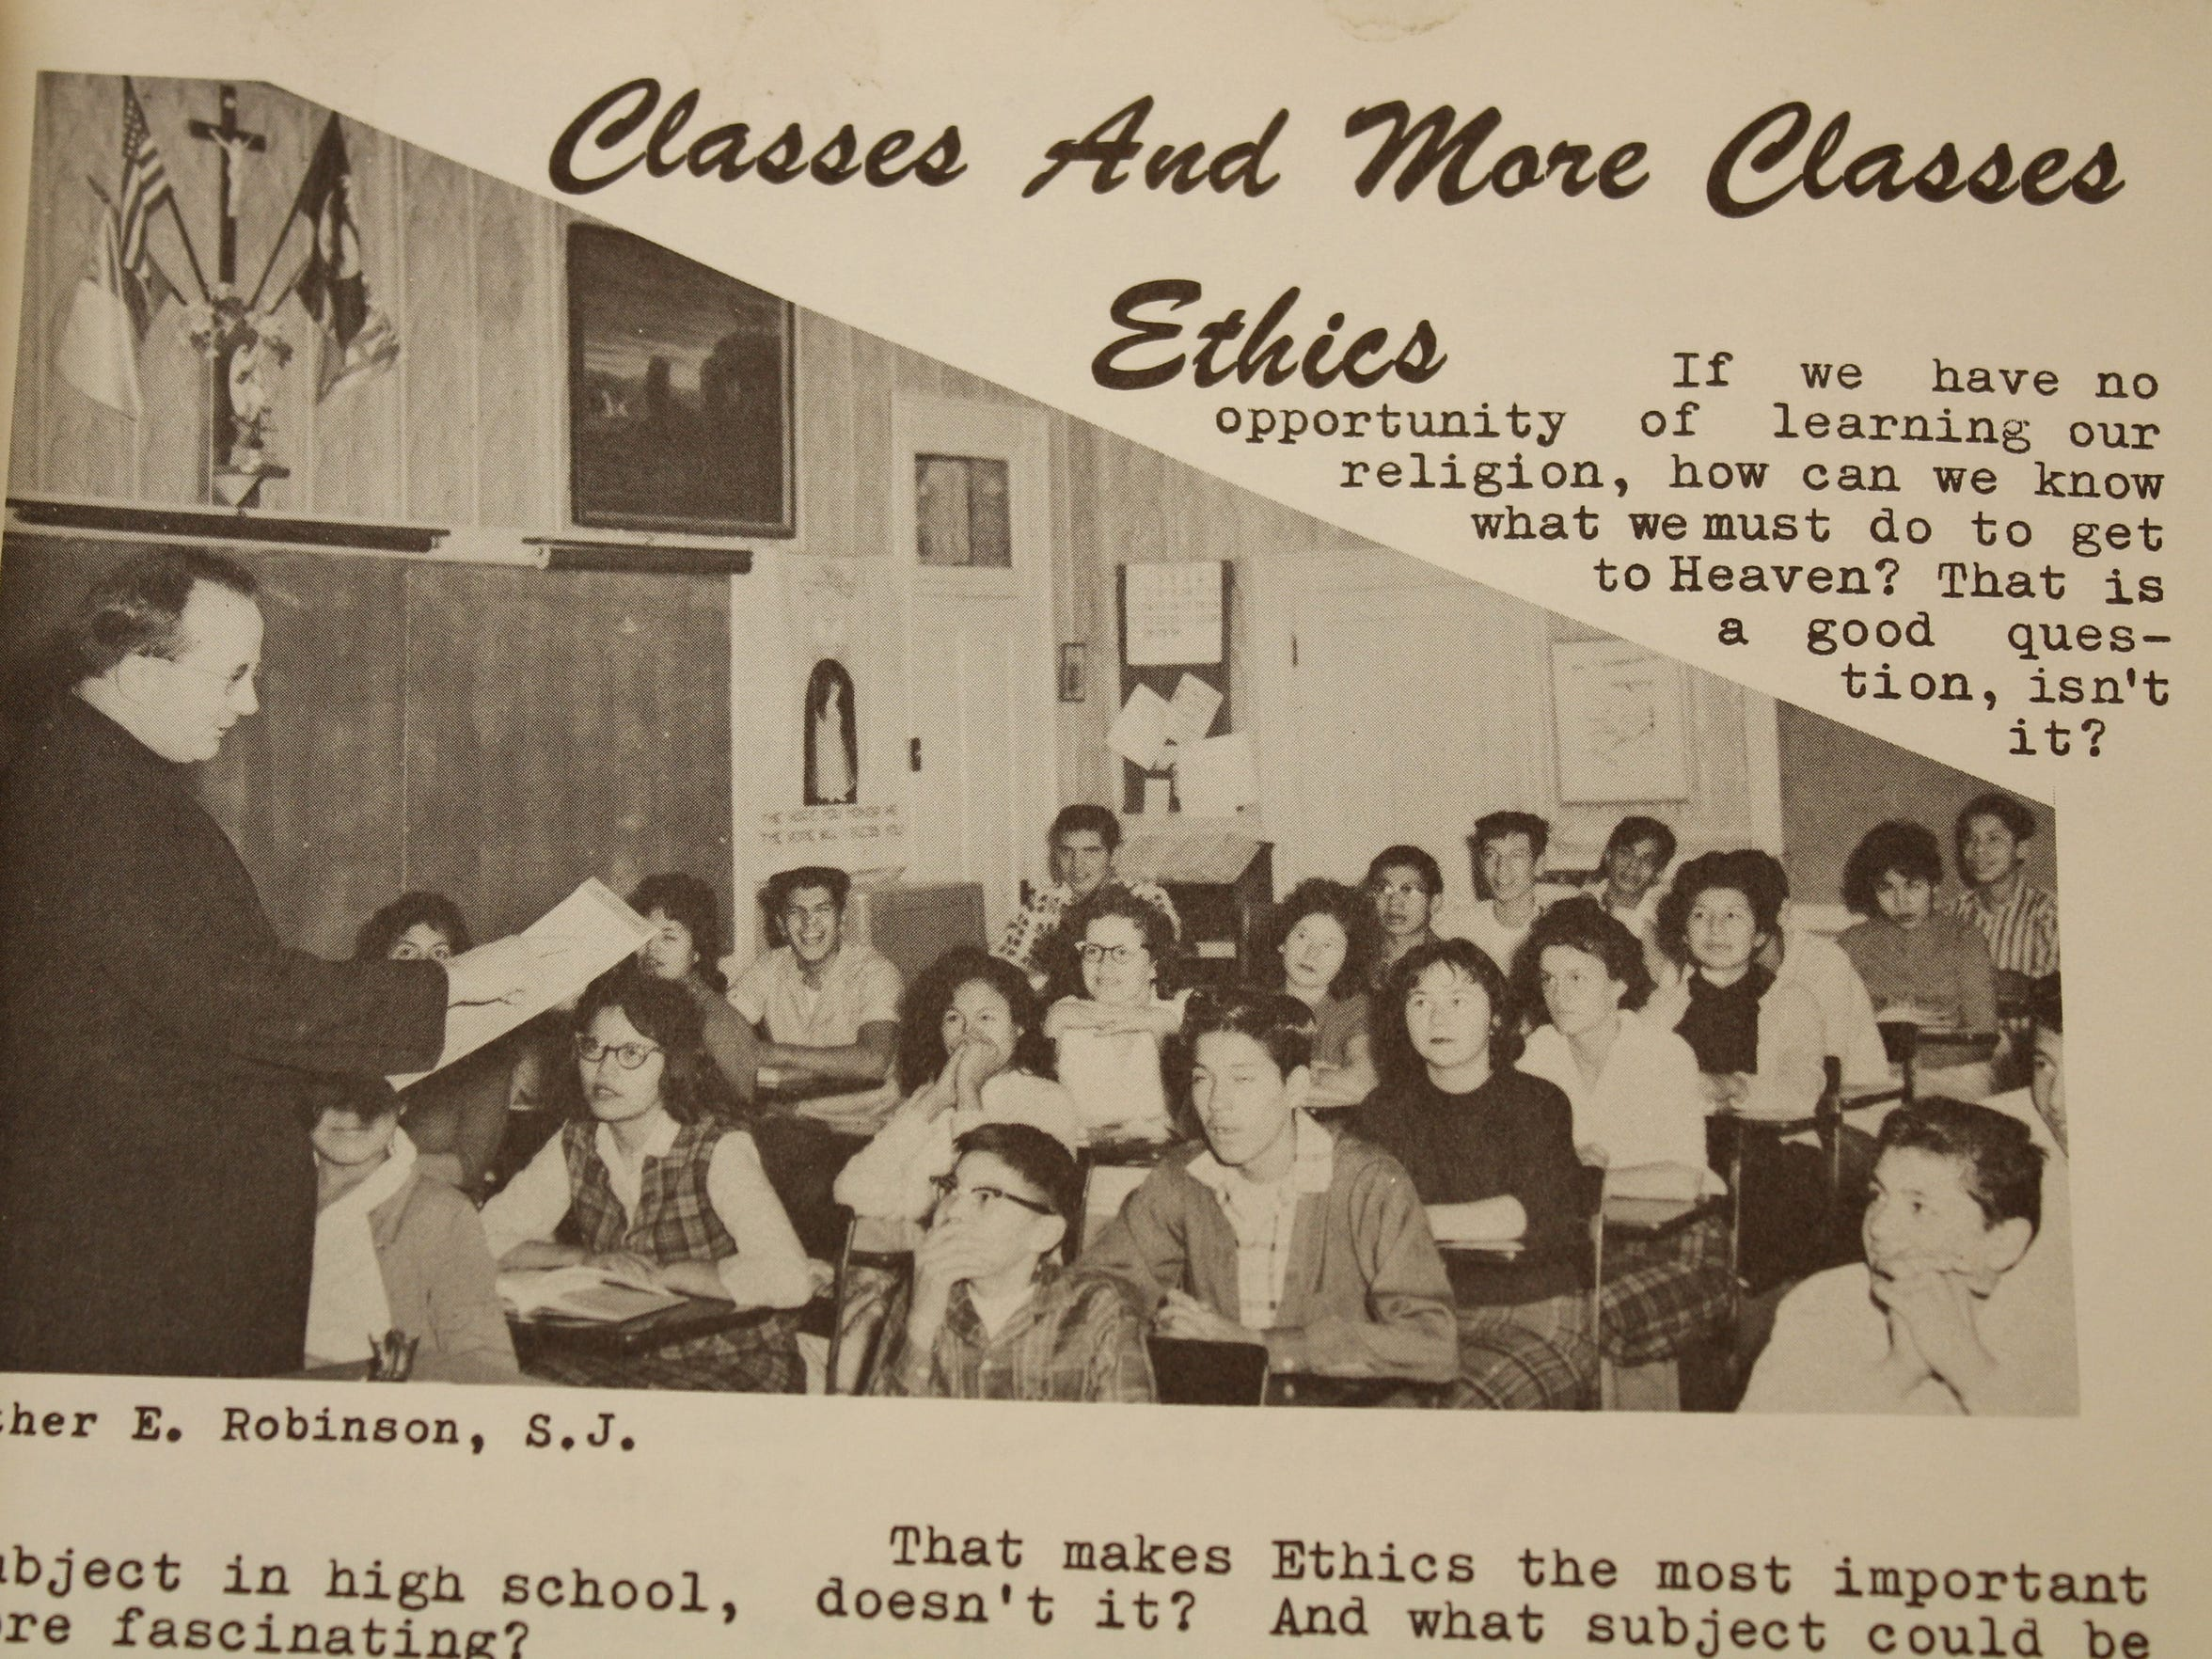 Father Edmund Robinson taught ethics classes at St. Paul's Mission School in Hays, Montana.